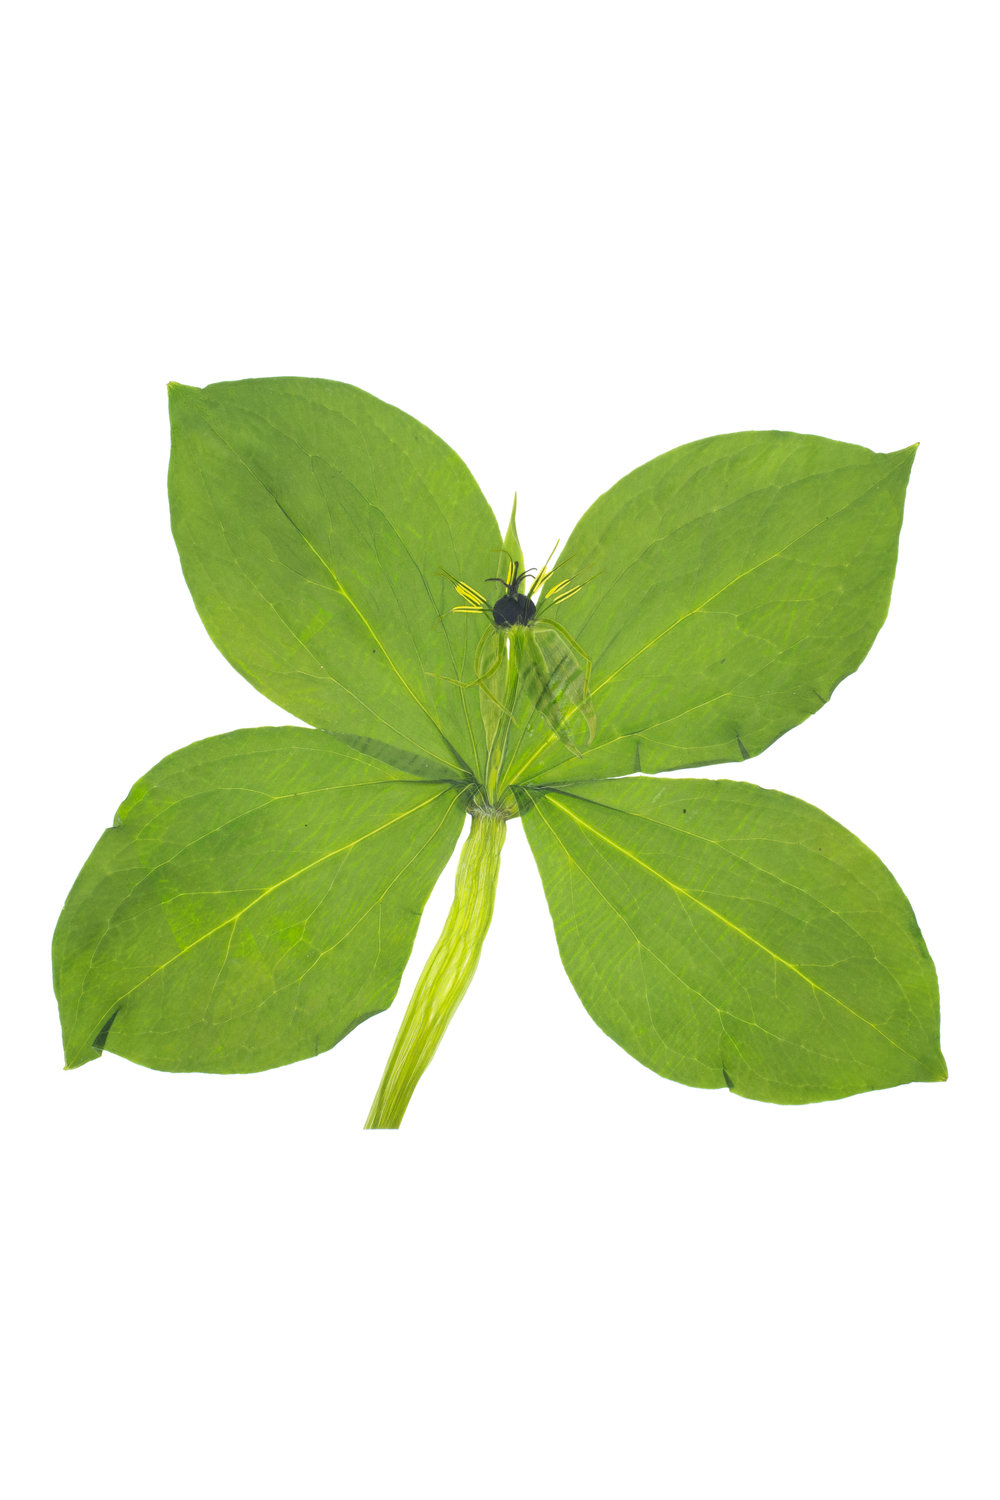 New! Herb-Paris / Paris quadrifolia